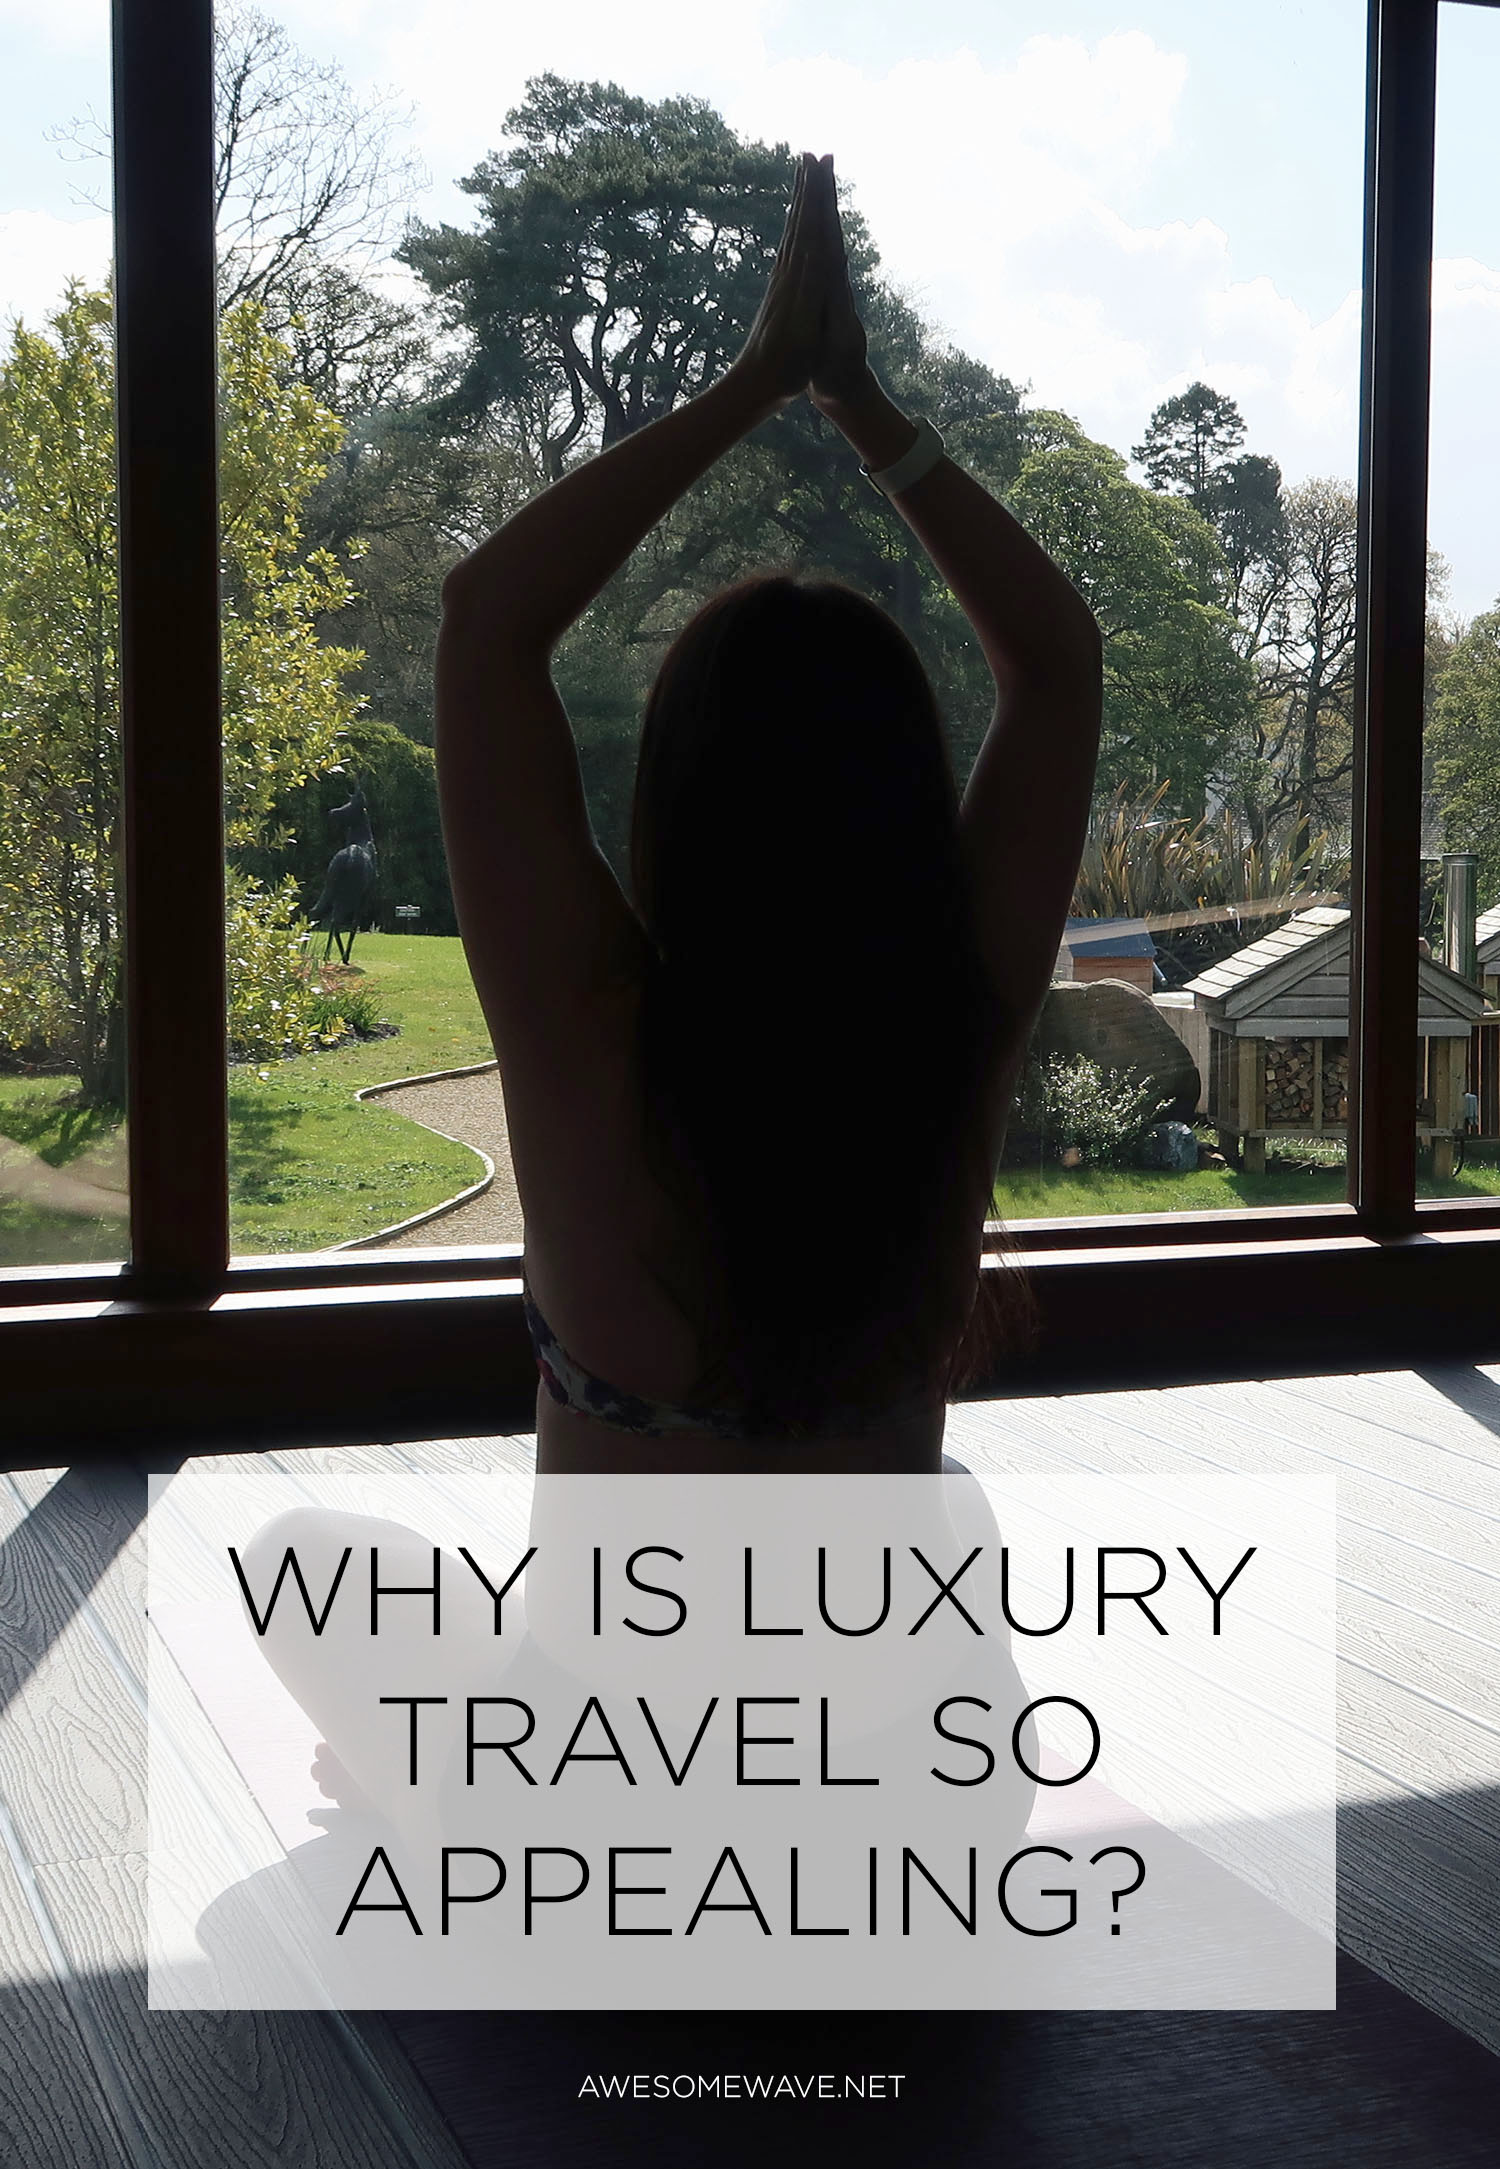 Why is luxury travel so appealing